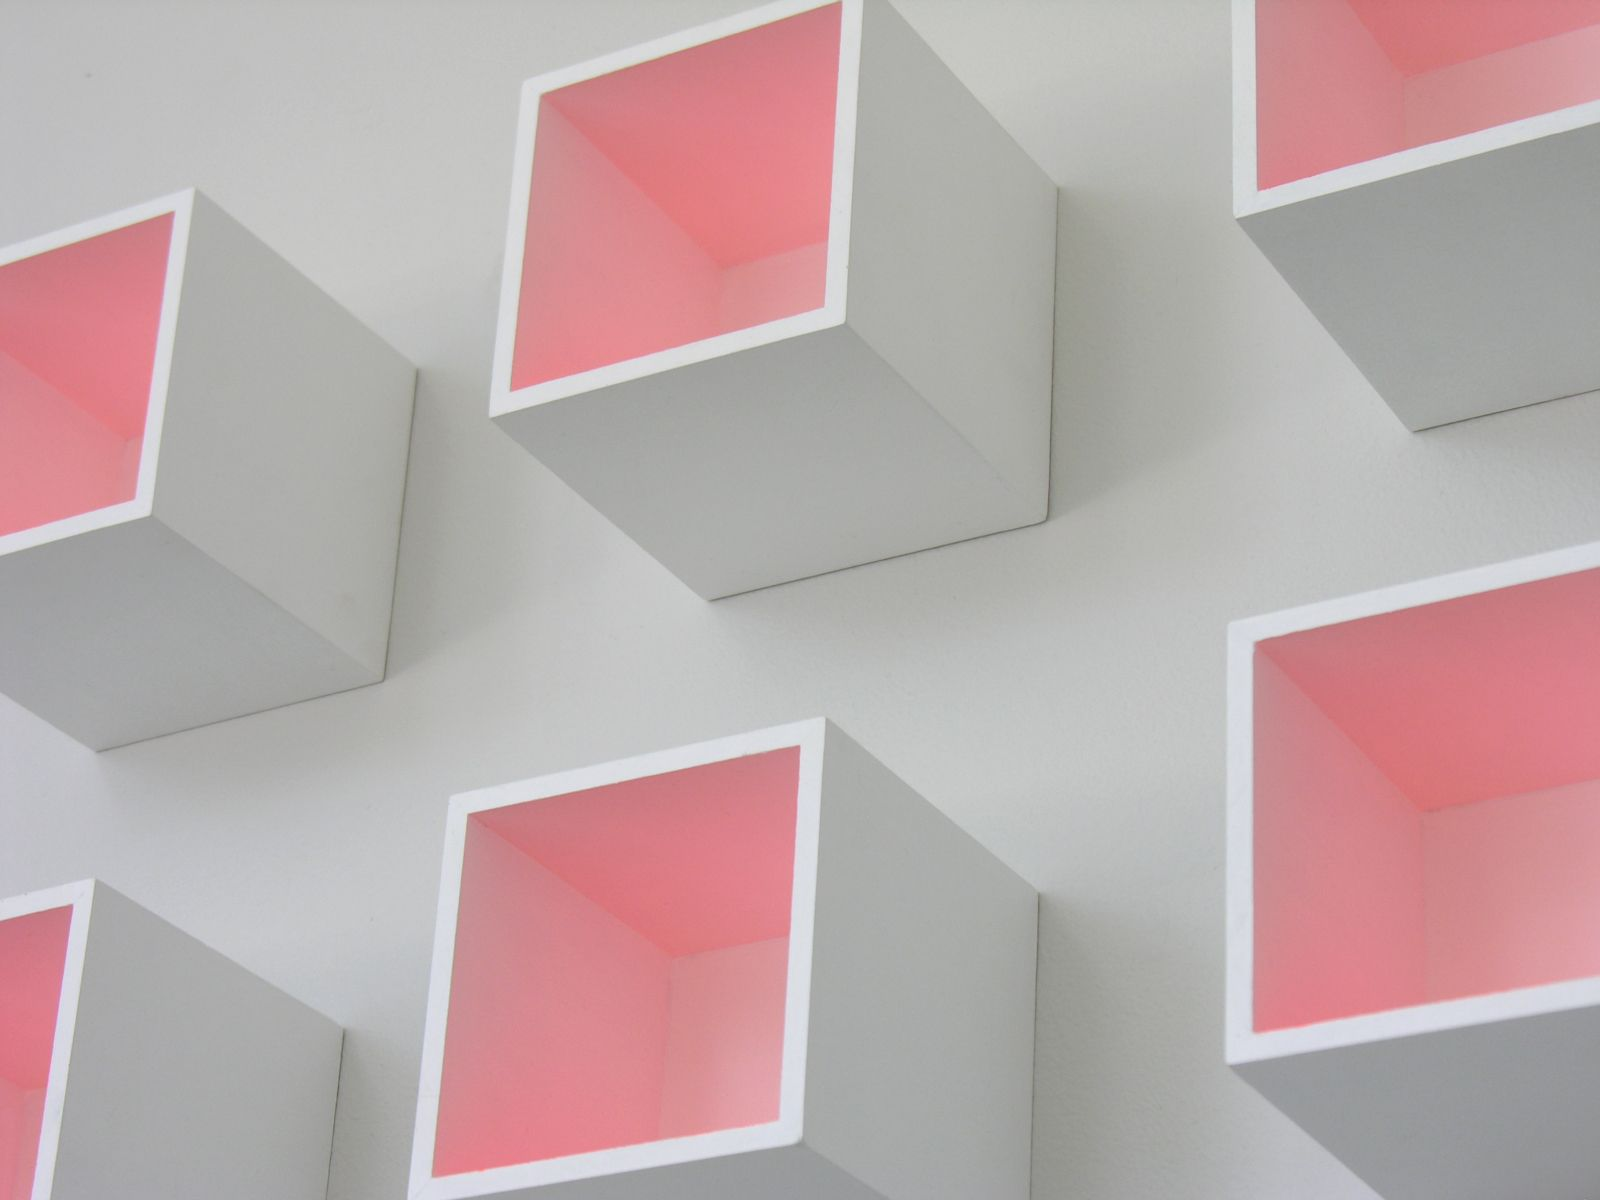 Luis Tomasello, Mural Chromoplastique, 2011 (detail). Acrylic on wood